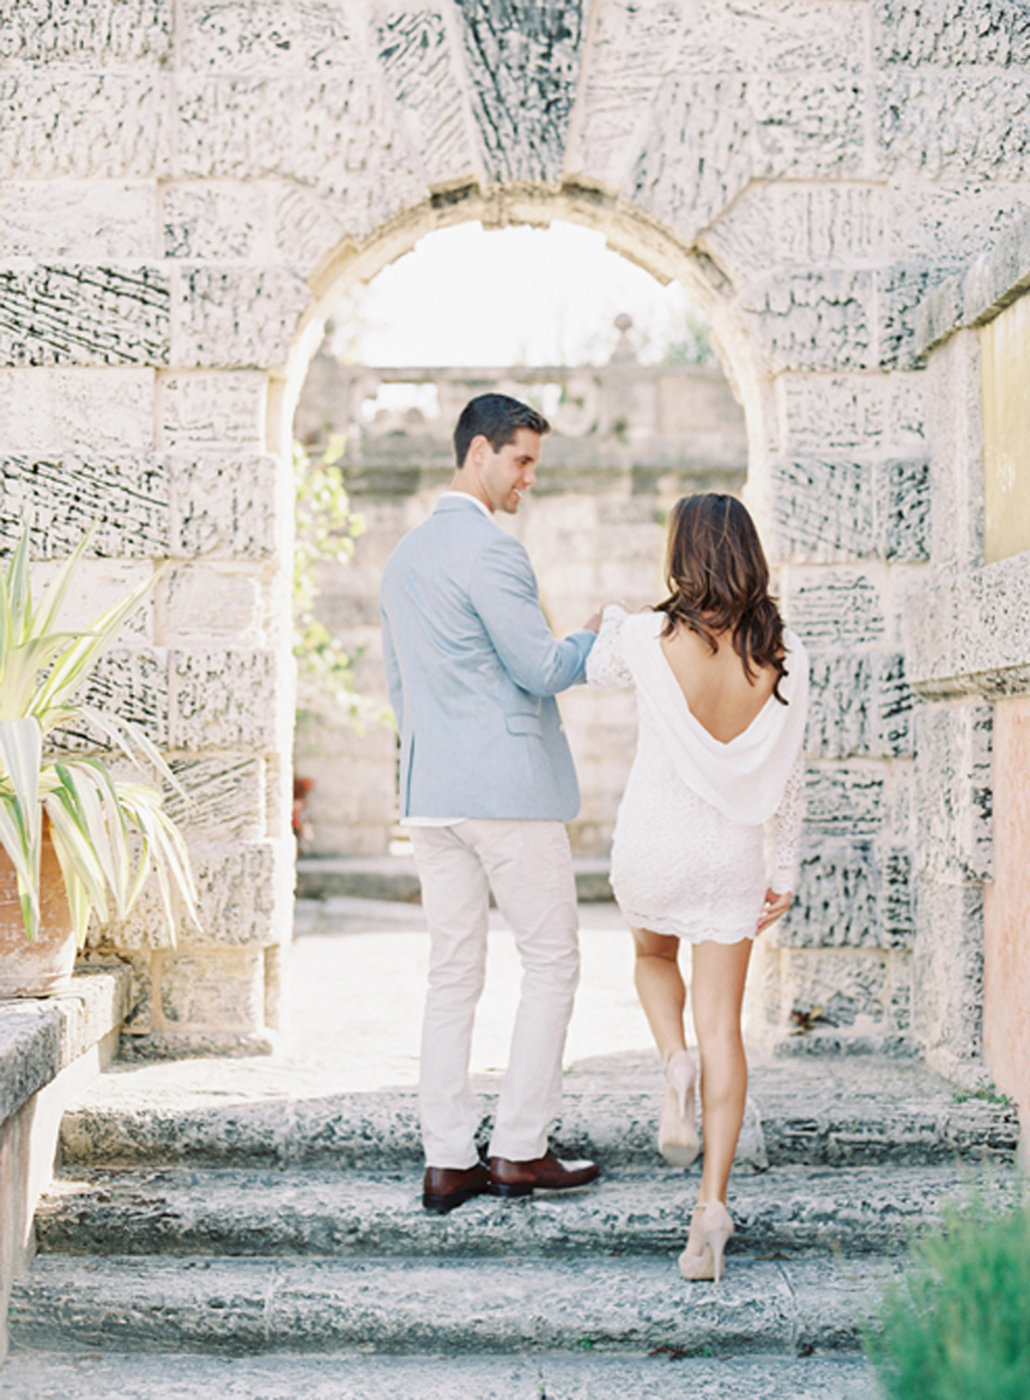 kayla_jon_vizcaya_sailboat_engagement_melanie_gabrielle_photography_18